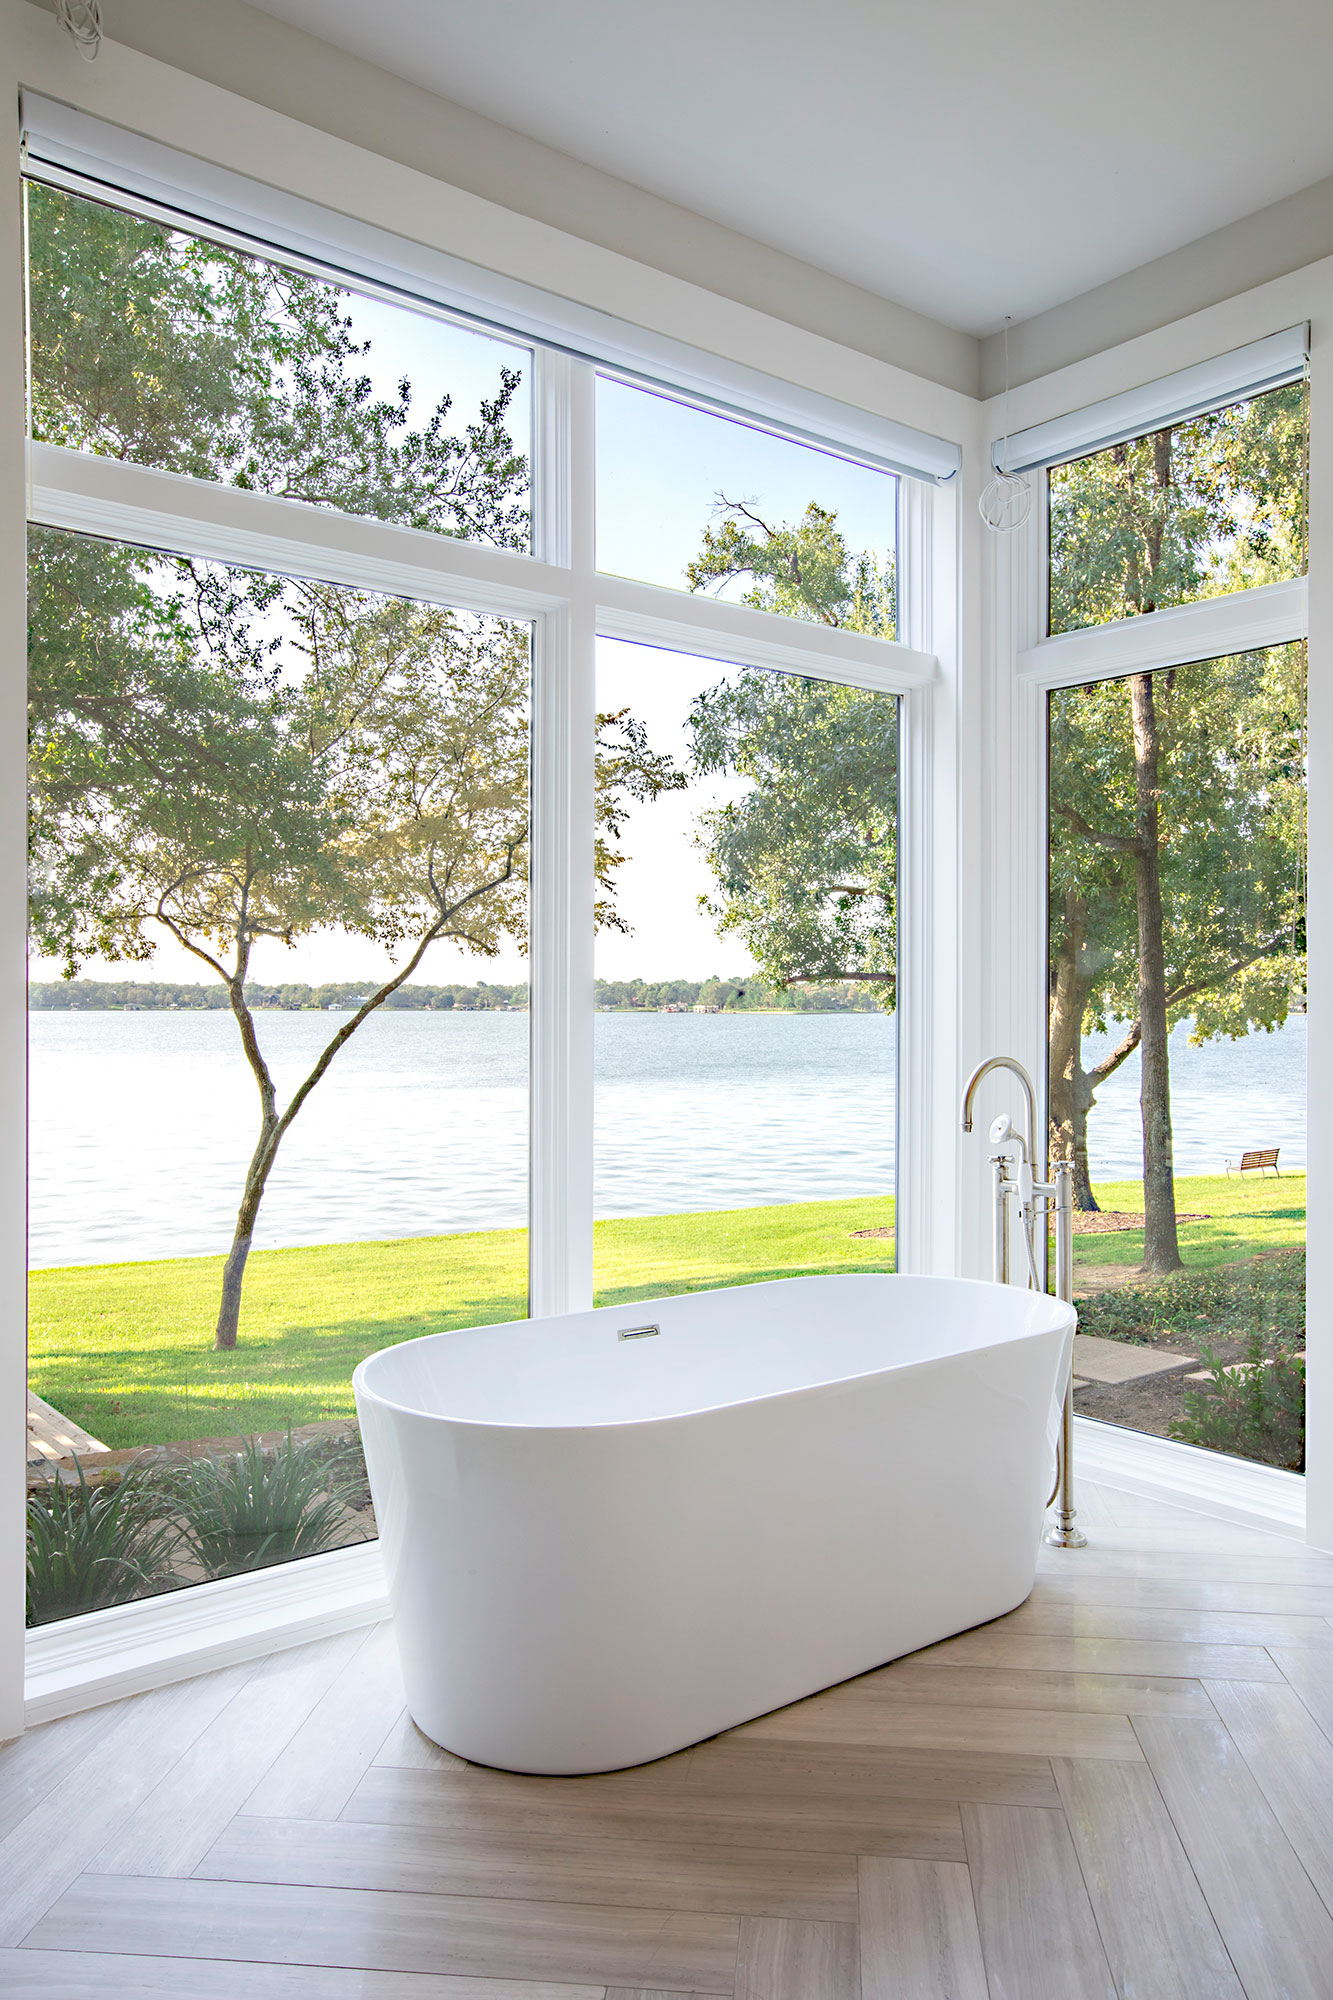 Gallery - Bathrooms - PLATINUM HOMES by Mark Molthan